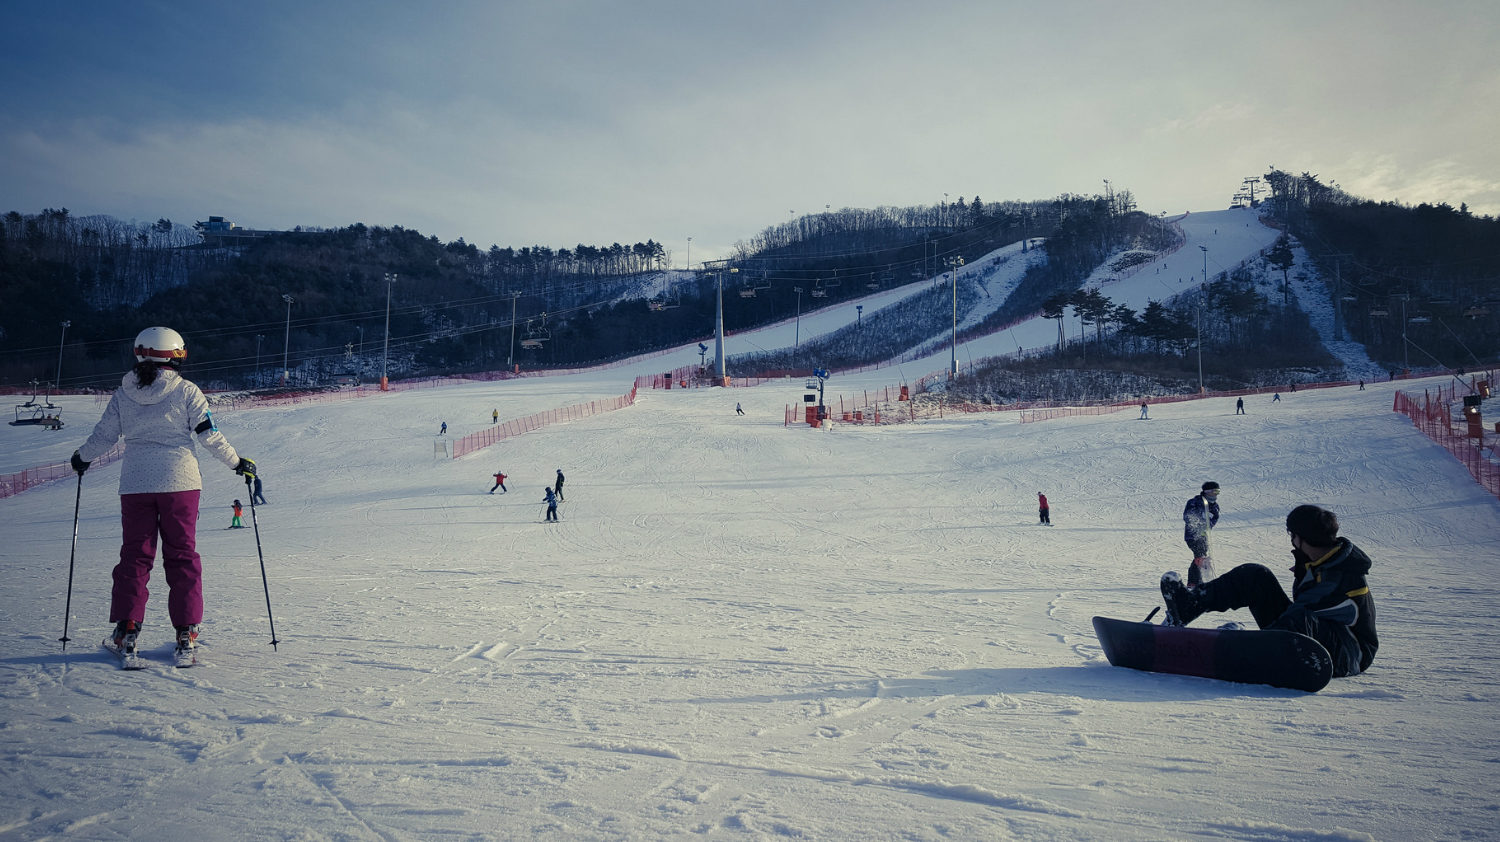 Yongpyong Ski Resort slopes